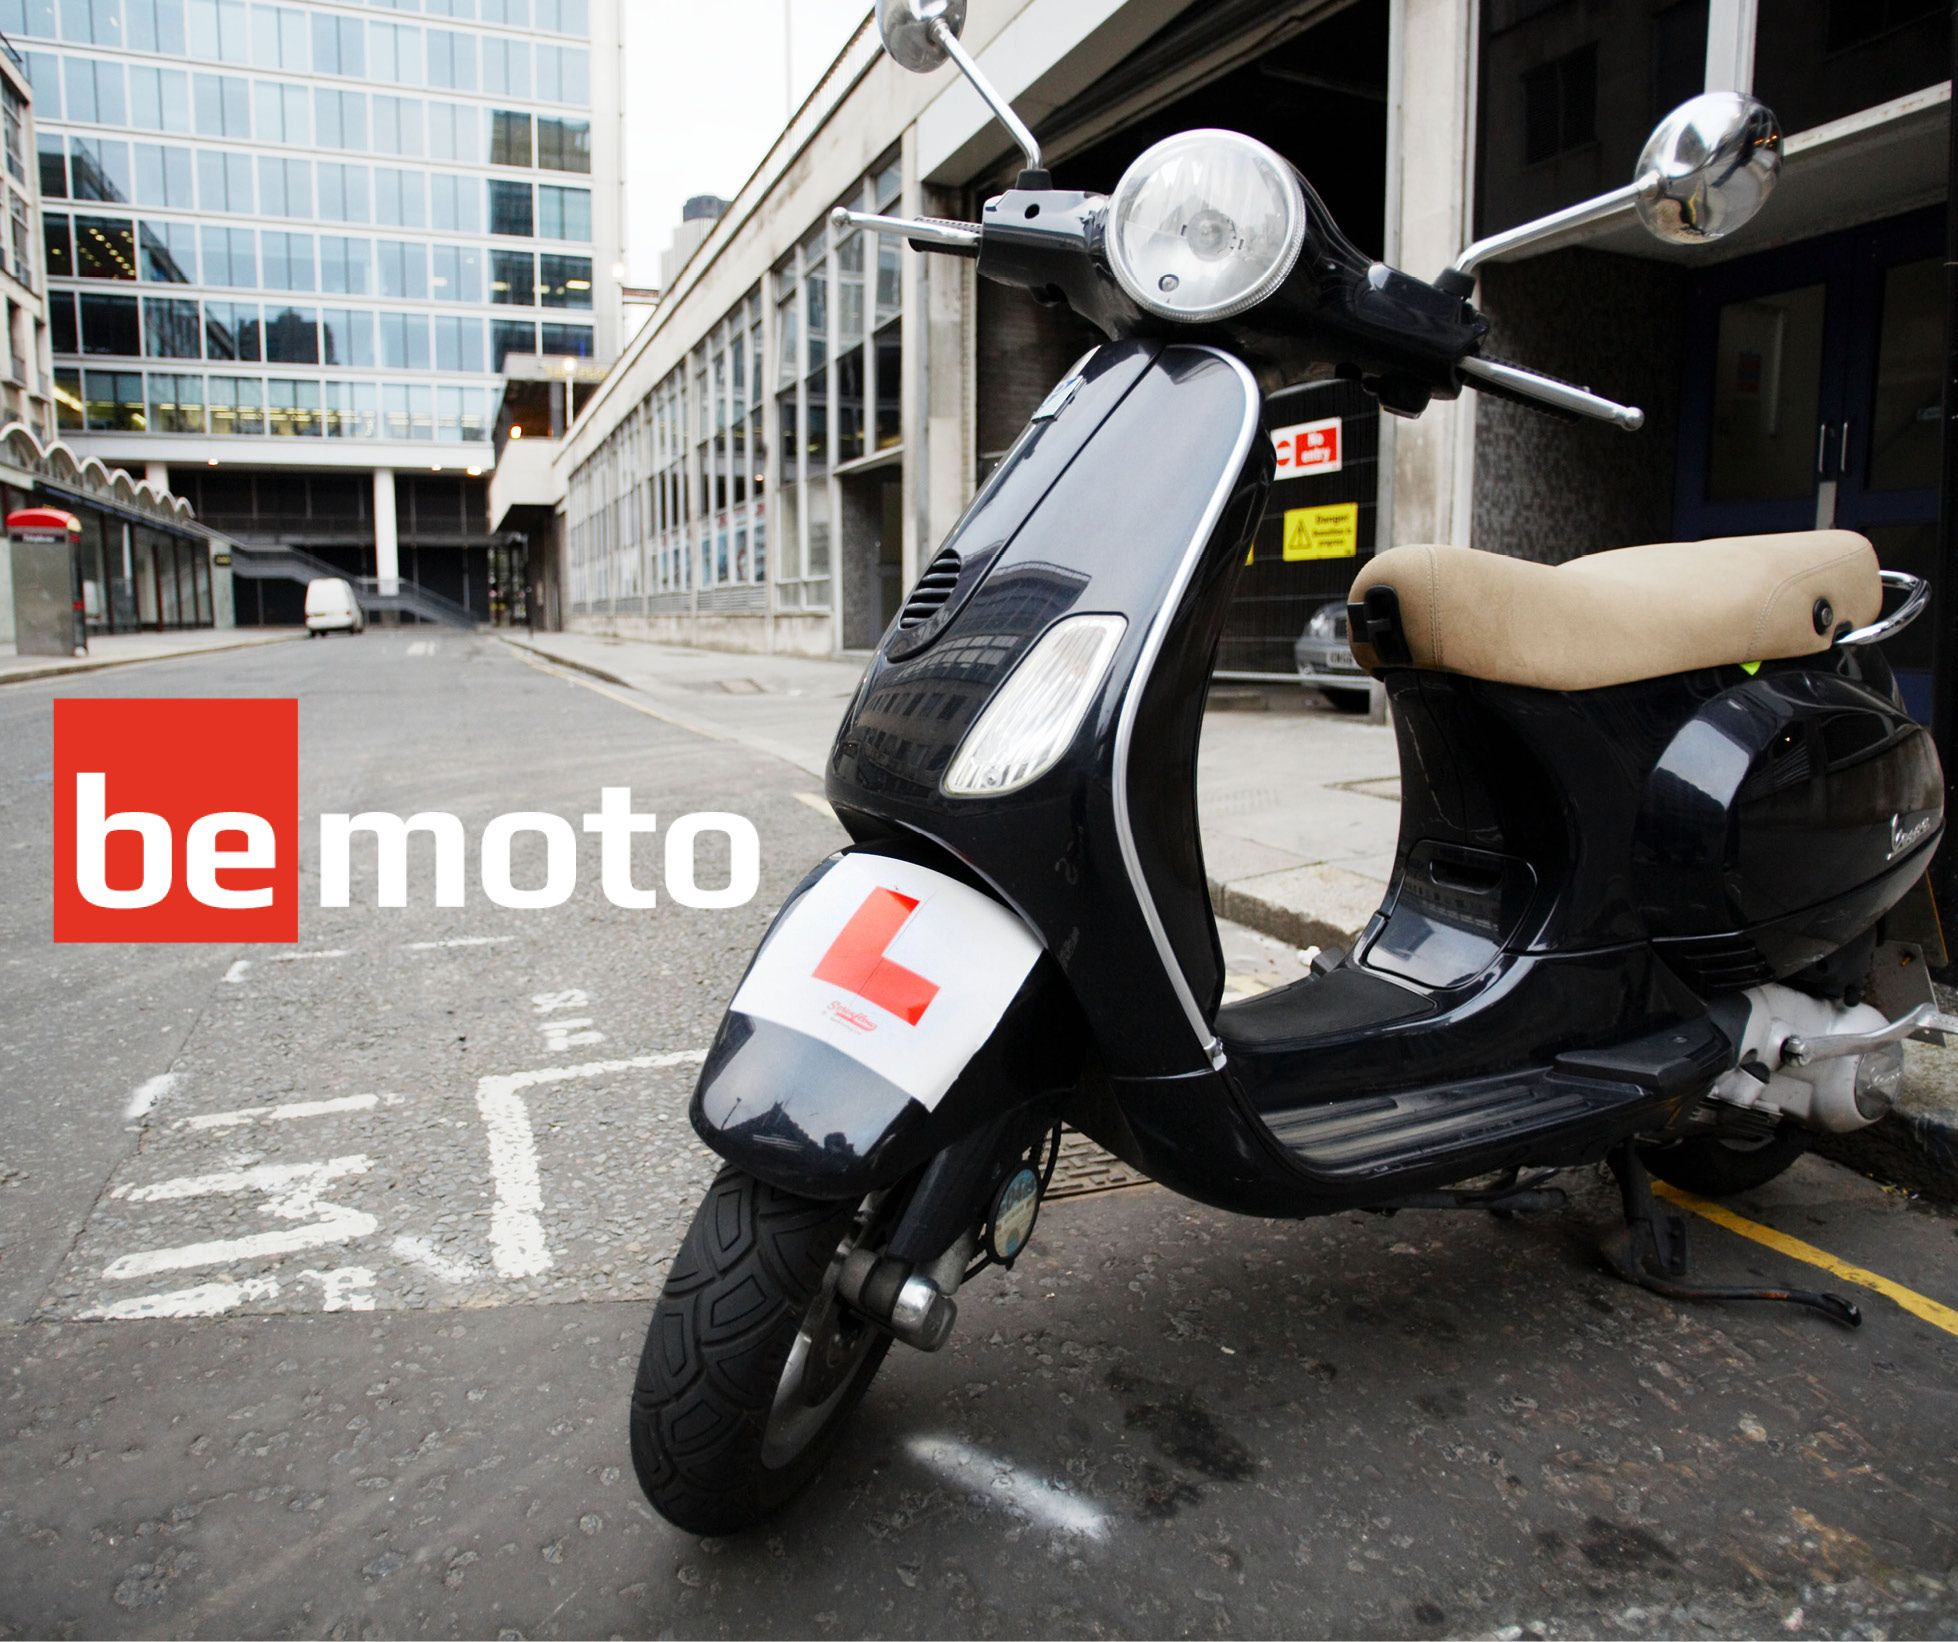 BeMoto Moped Insurance